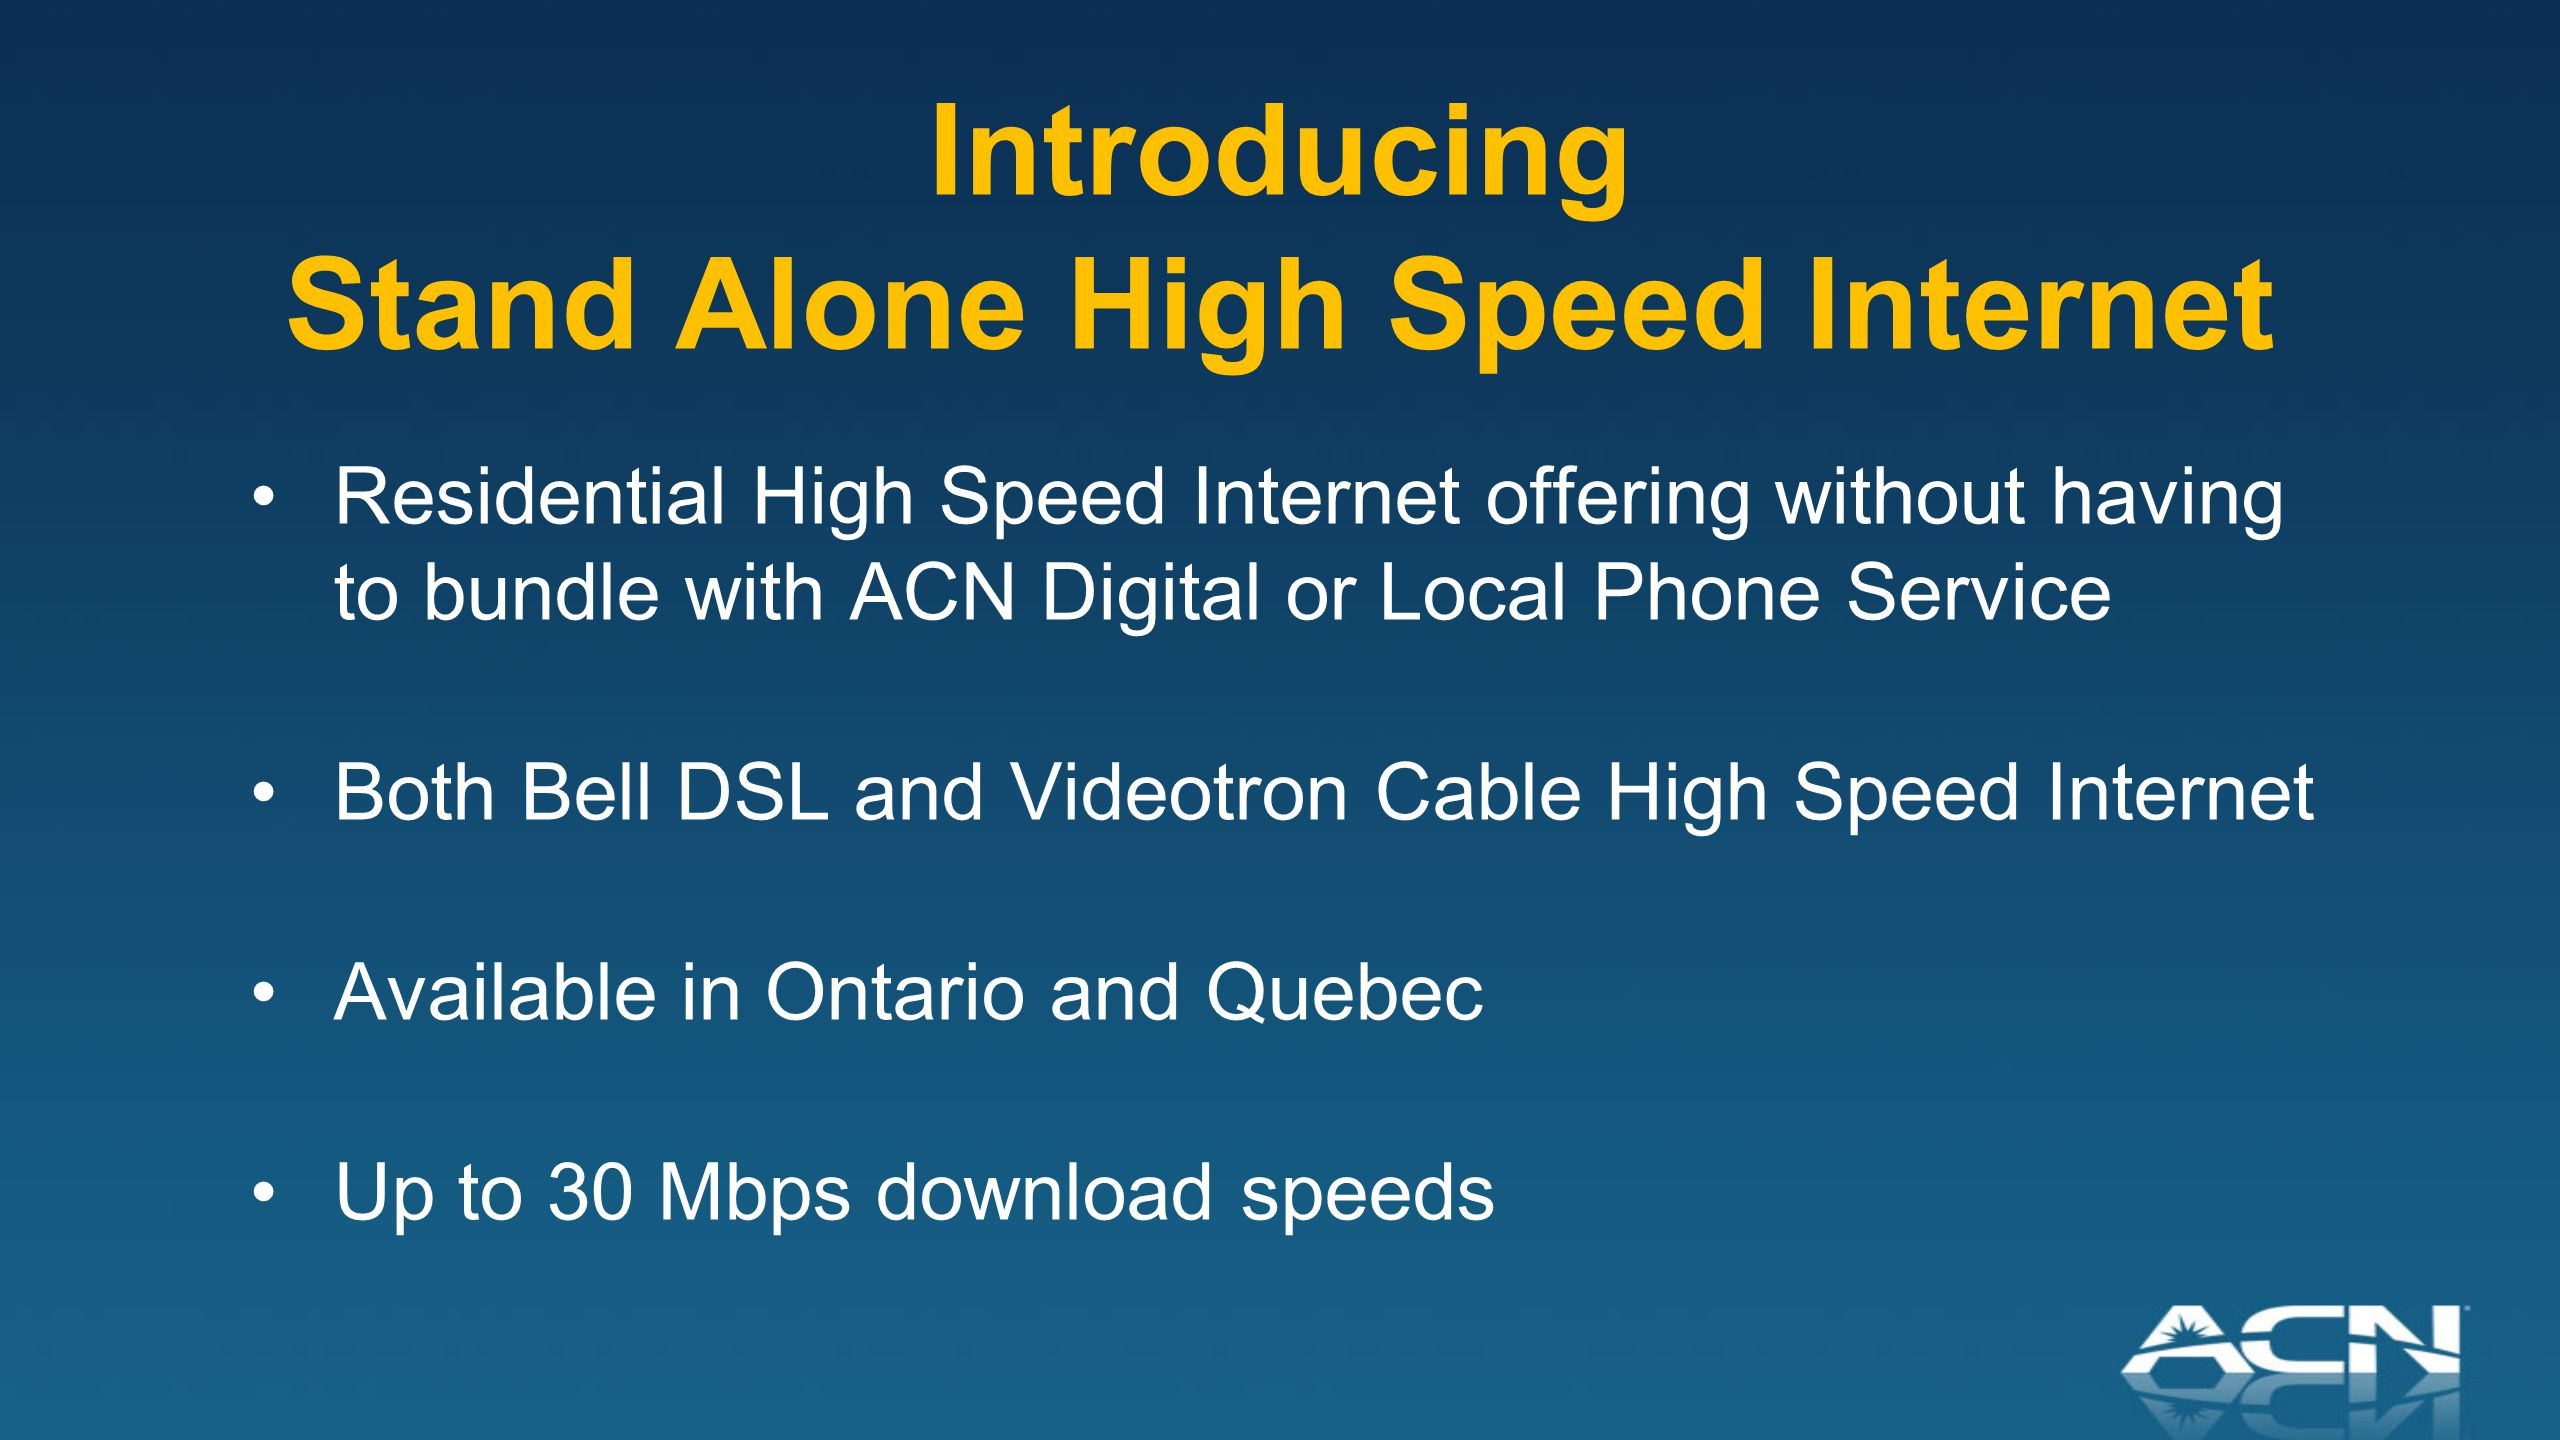 Introducing Stand Alone High Speed Internet Residential High Speed Internet offering without having to bundle with ACN Digital or Local Phone Service Both Bell DSL and Videotron Cable High Speed Internet Available in Ontario and Quebec Up to 30 Mbps download speeds